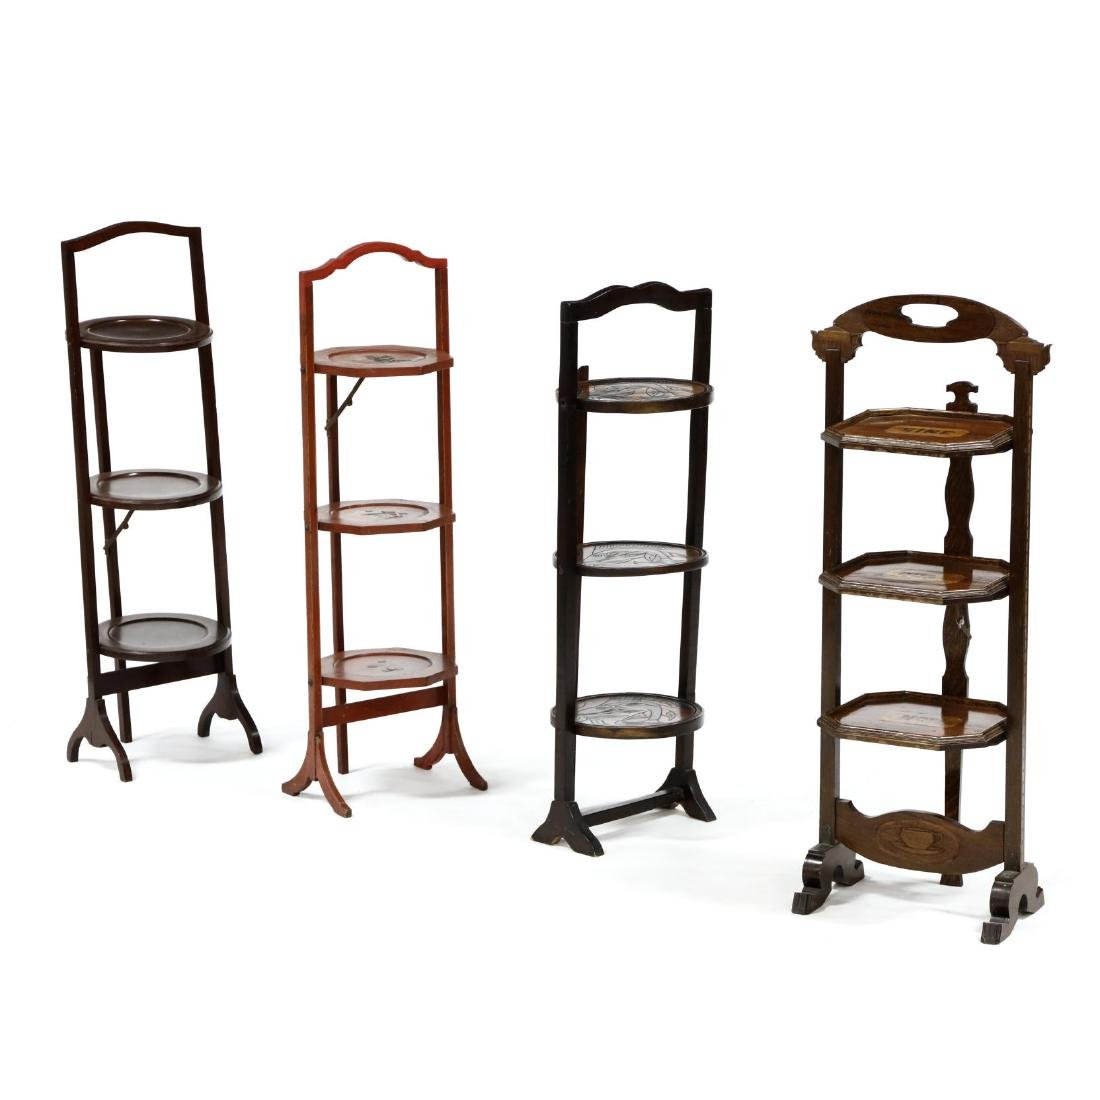 Four Vintage Muffin Stands